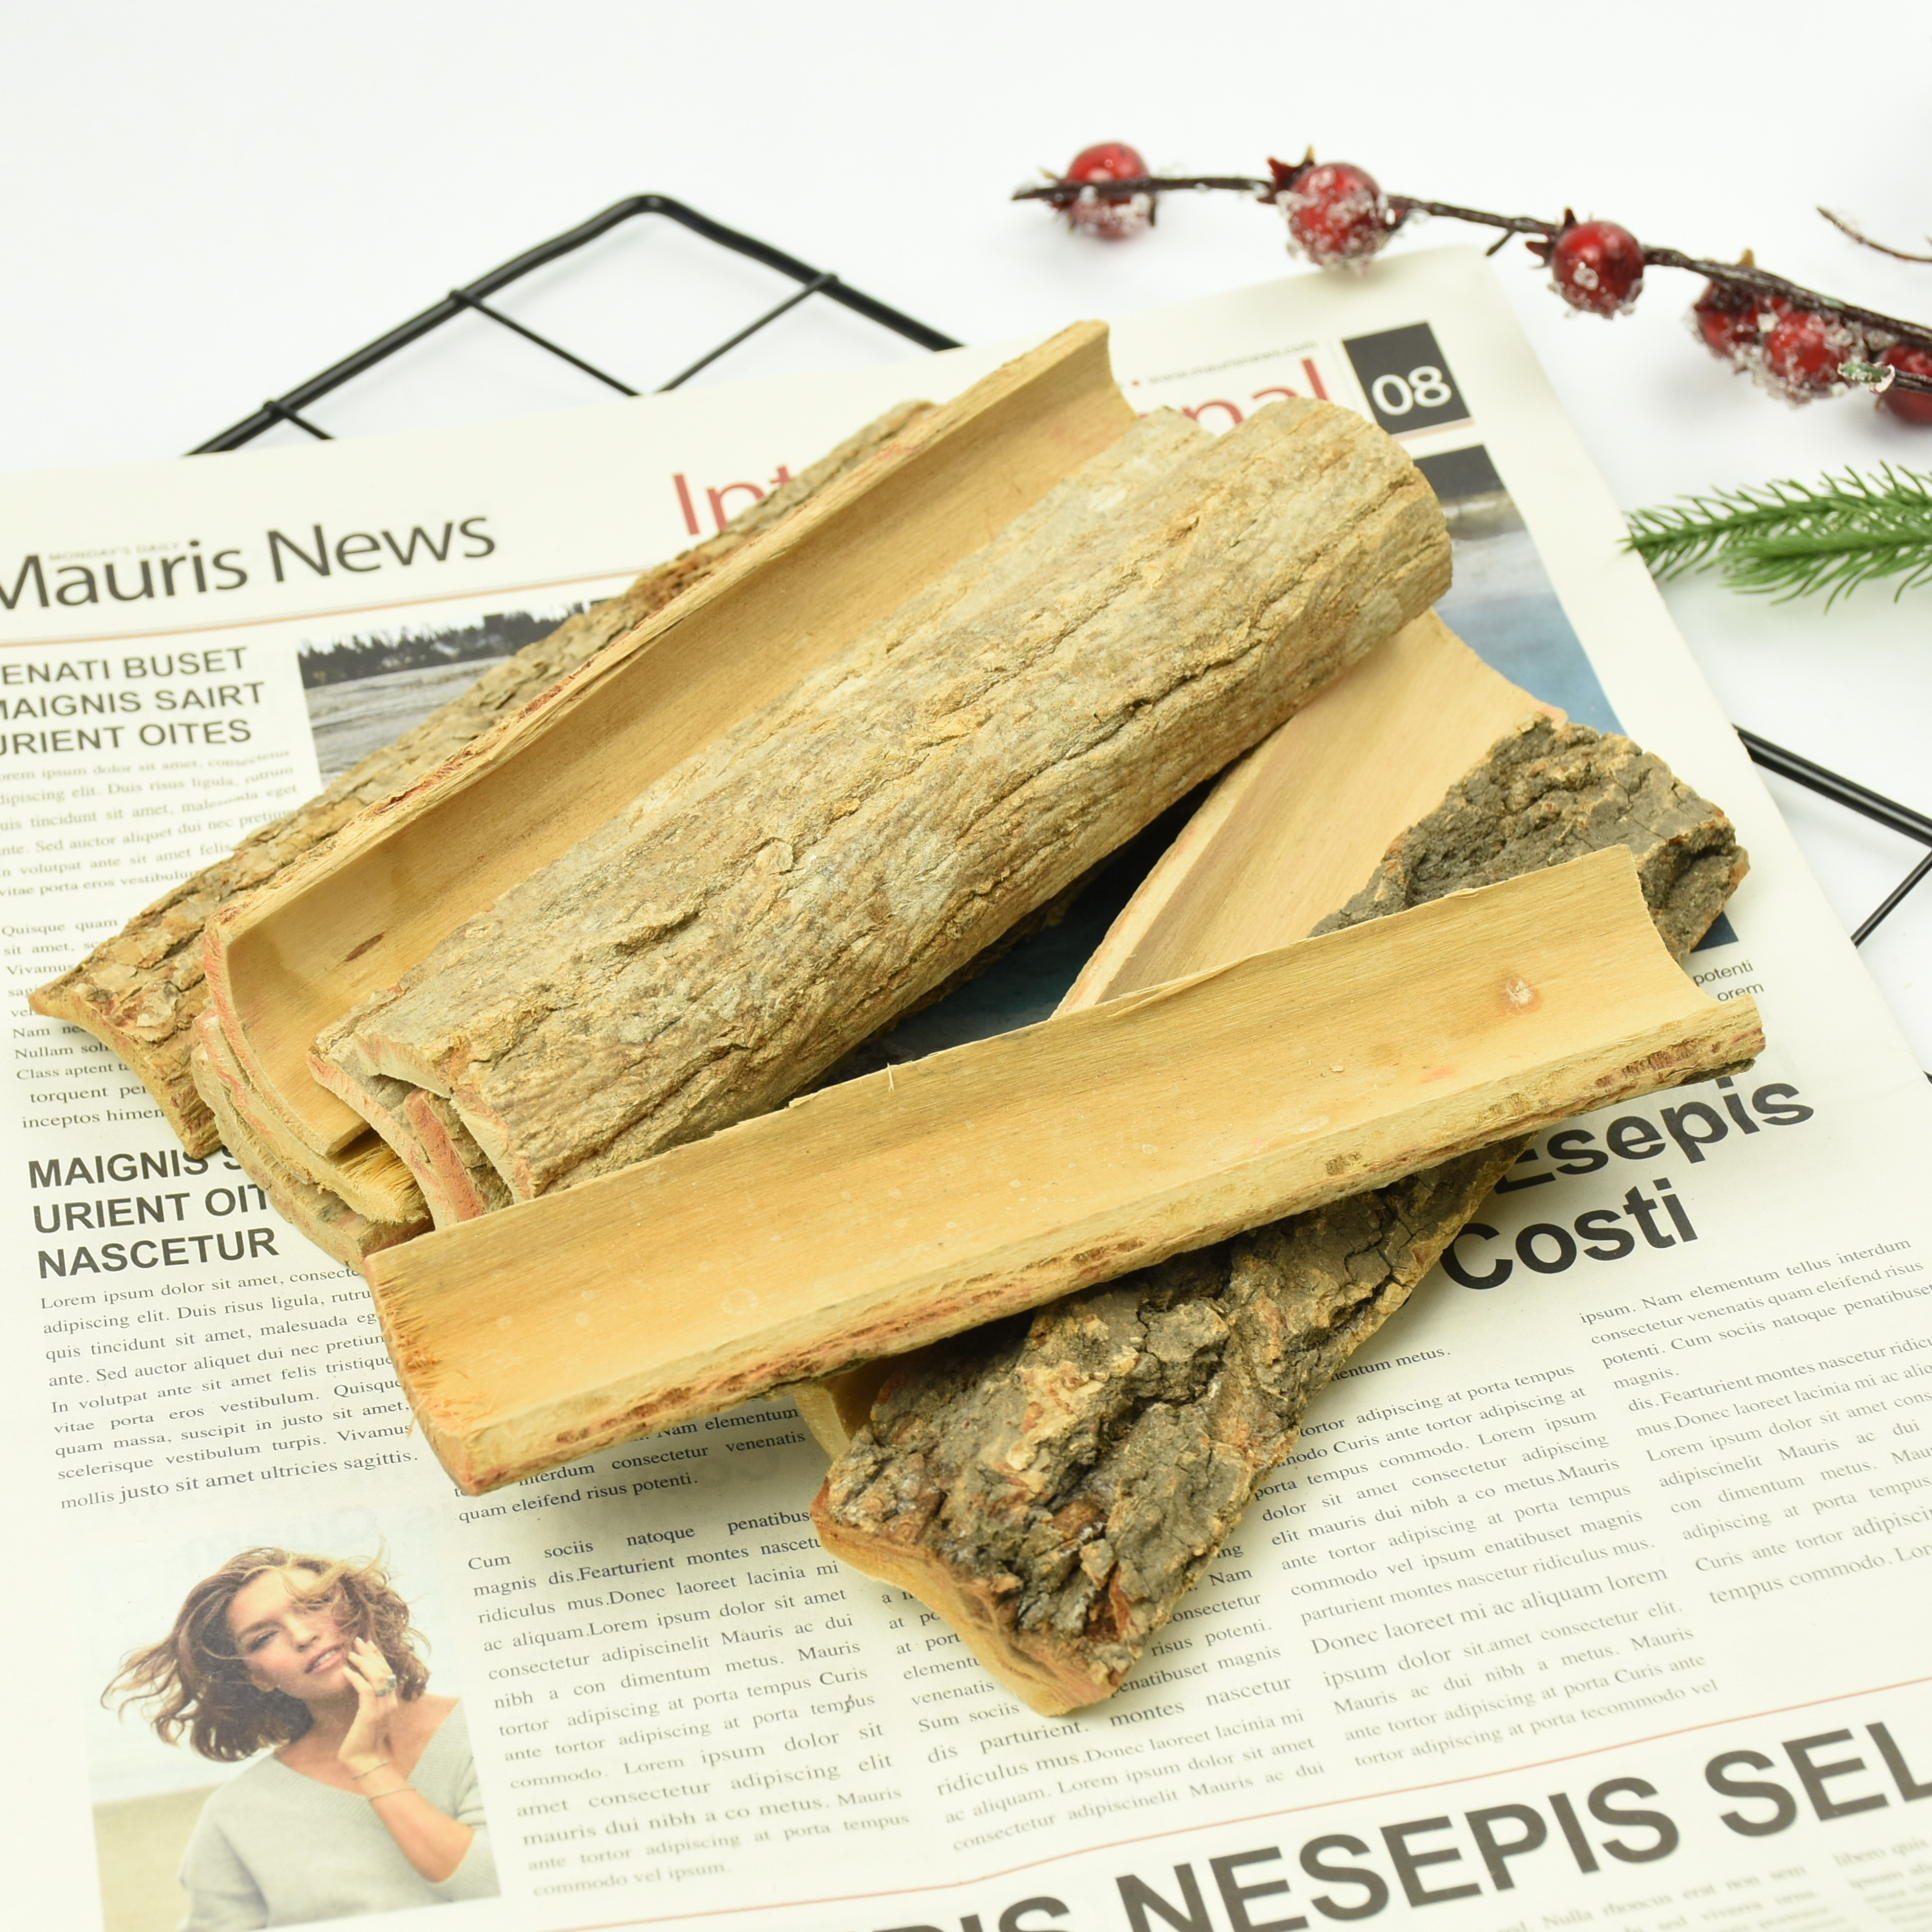 BSCI FSC Gifts Craft for gardening natural basswood Christmas fire <strong>wood</strong> crafts tree bark decoration